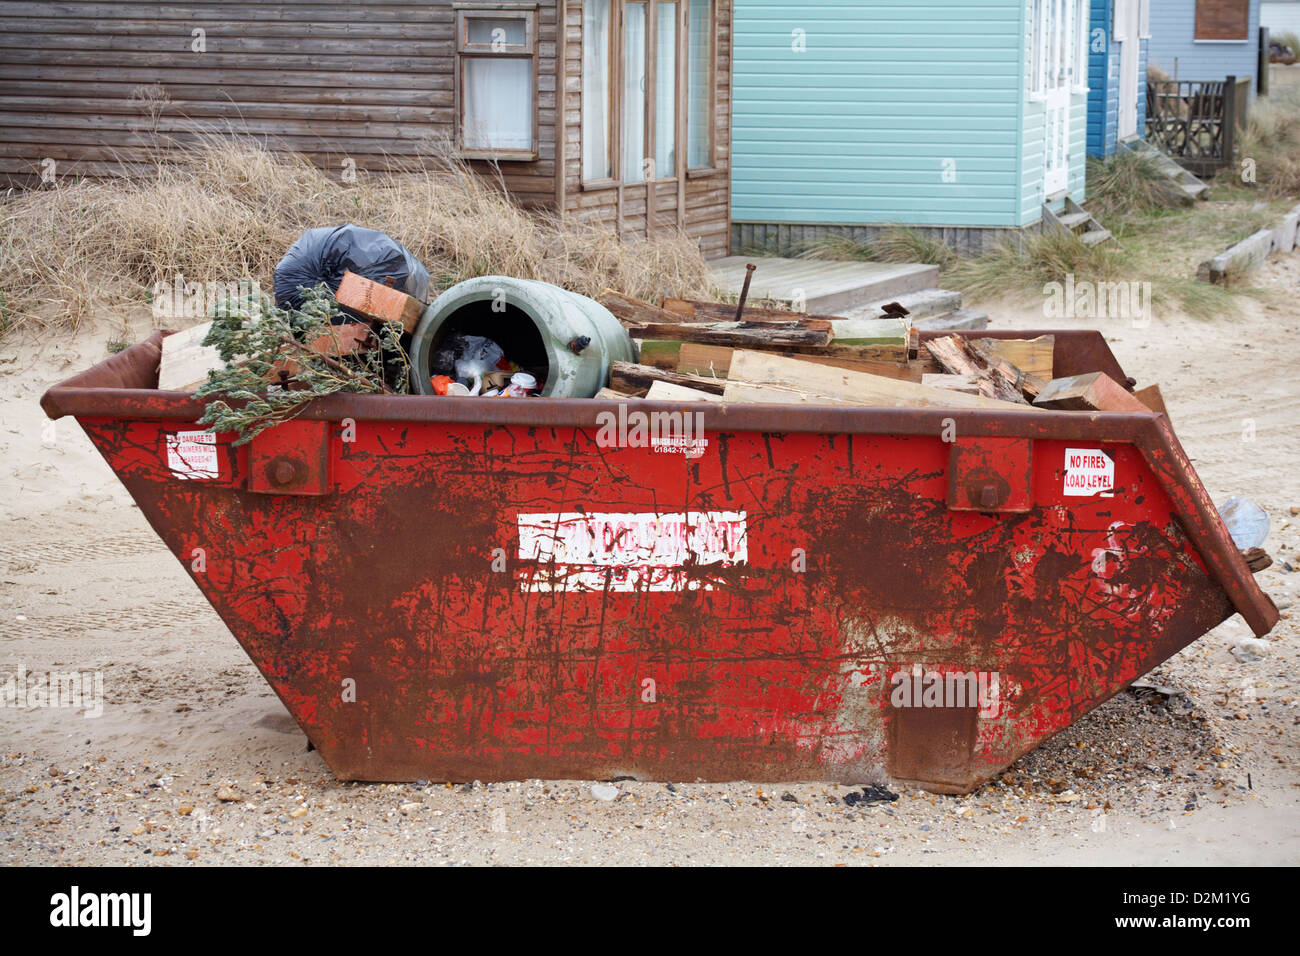 Skip for beach hut owners rubbish at Hengistbury Head, Dorset in January - Stock Image